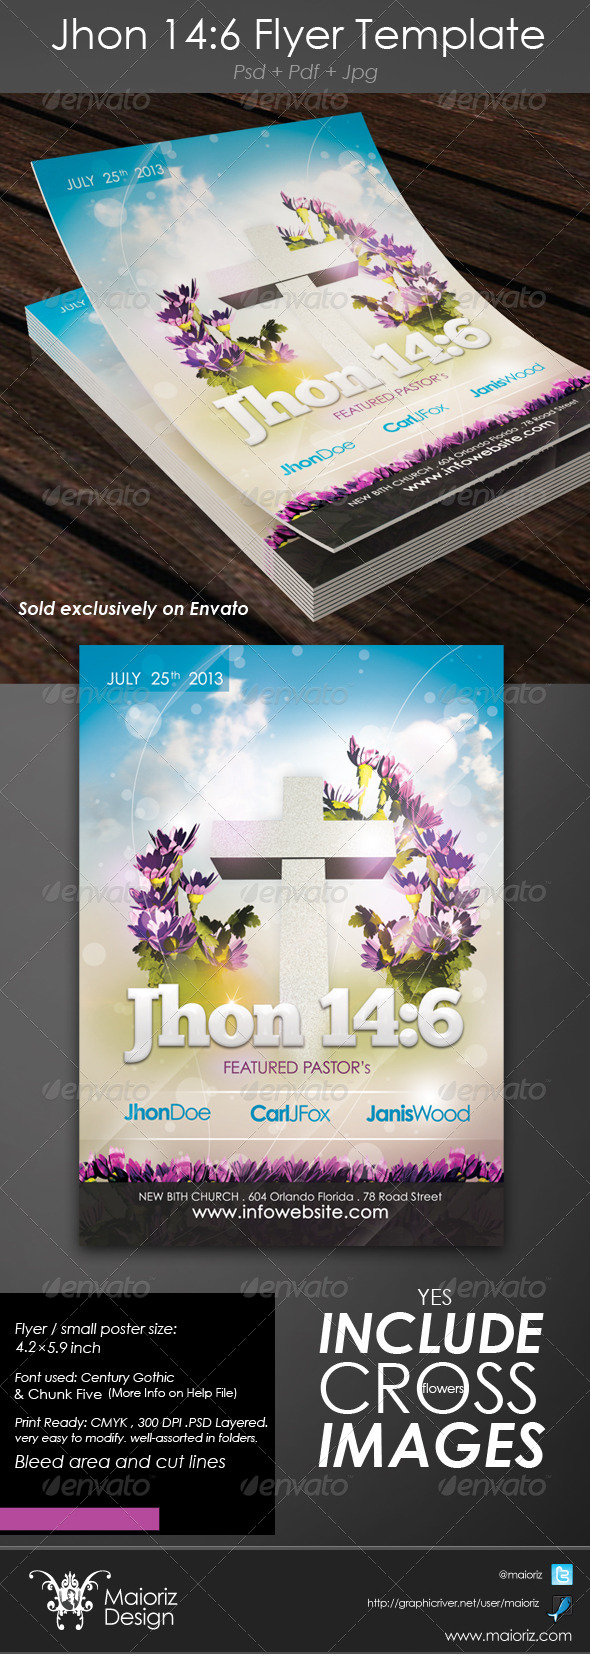 John 14:6 Flyer - Church Flyers